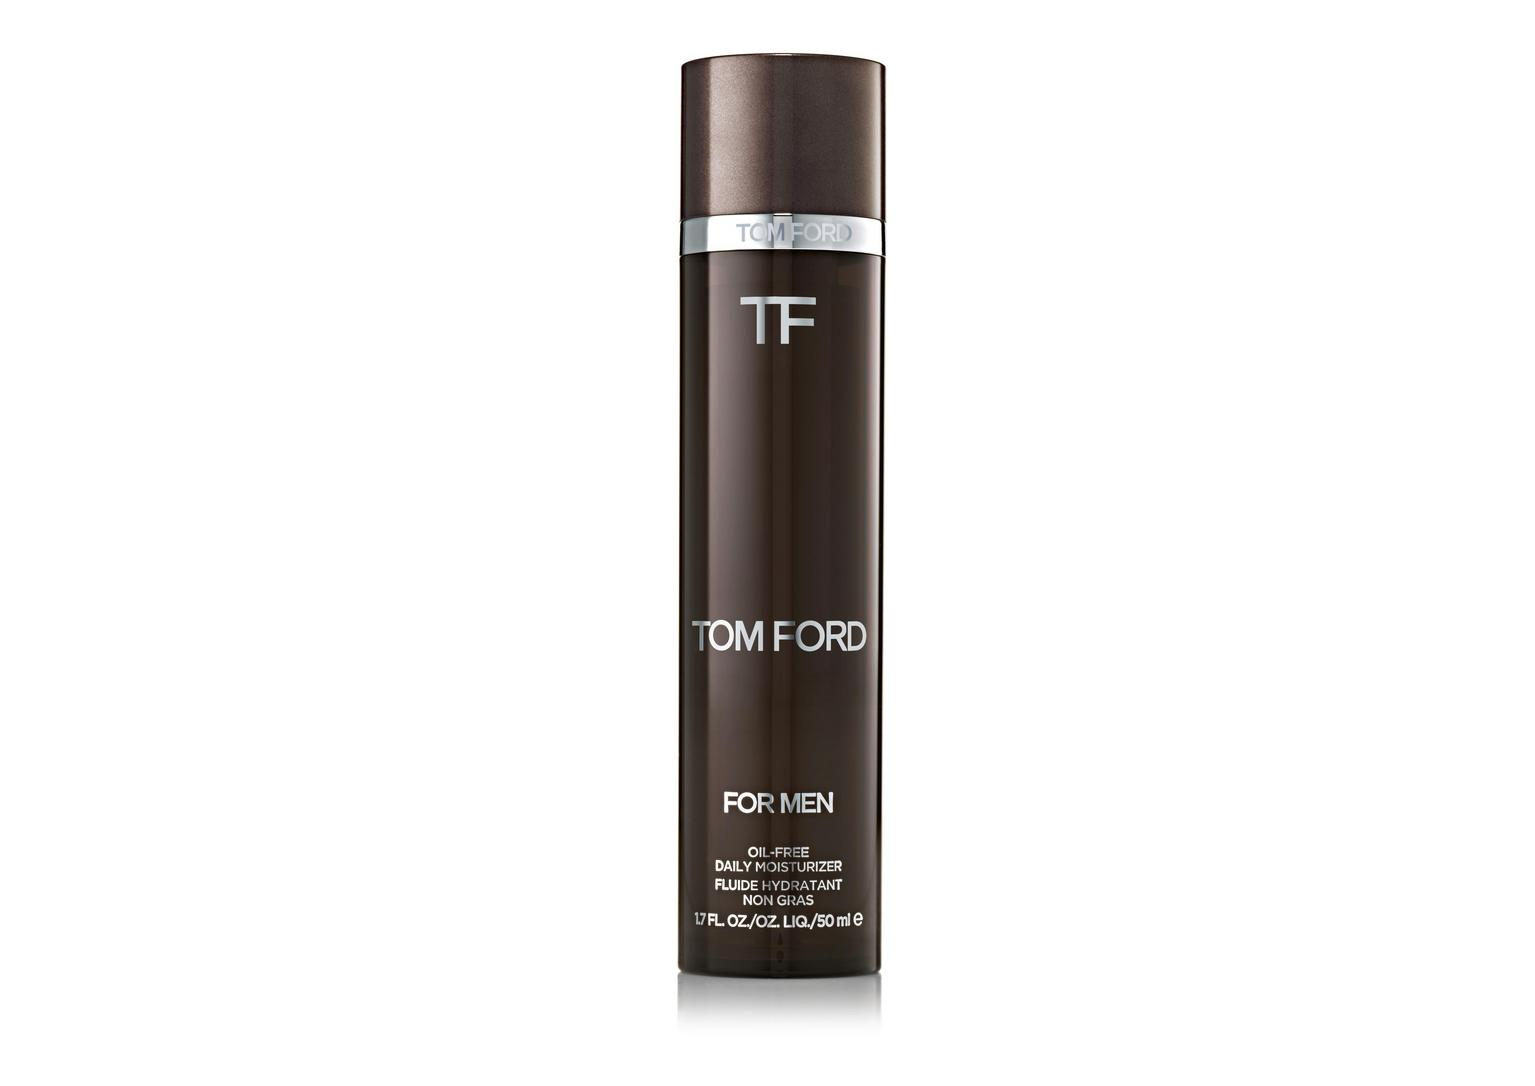 Tom Ford For Men Oil-Free Daily Moisturizer